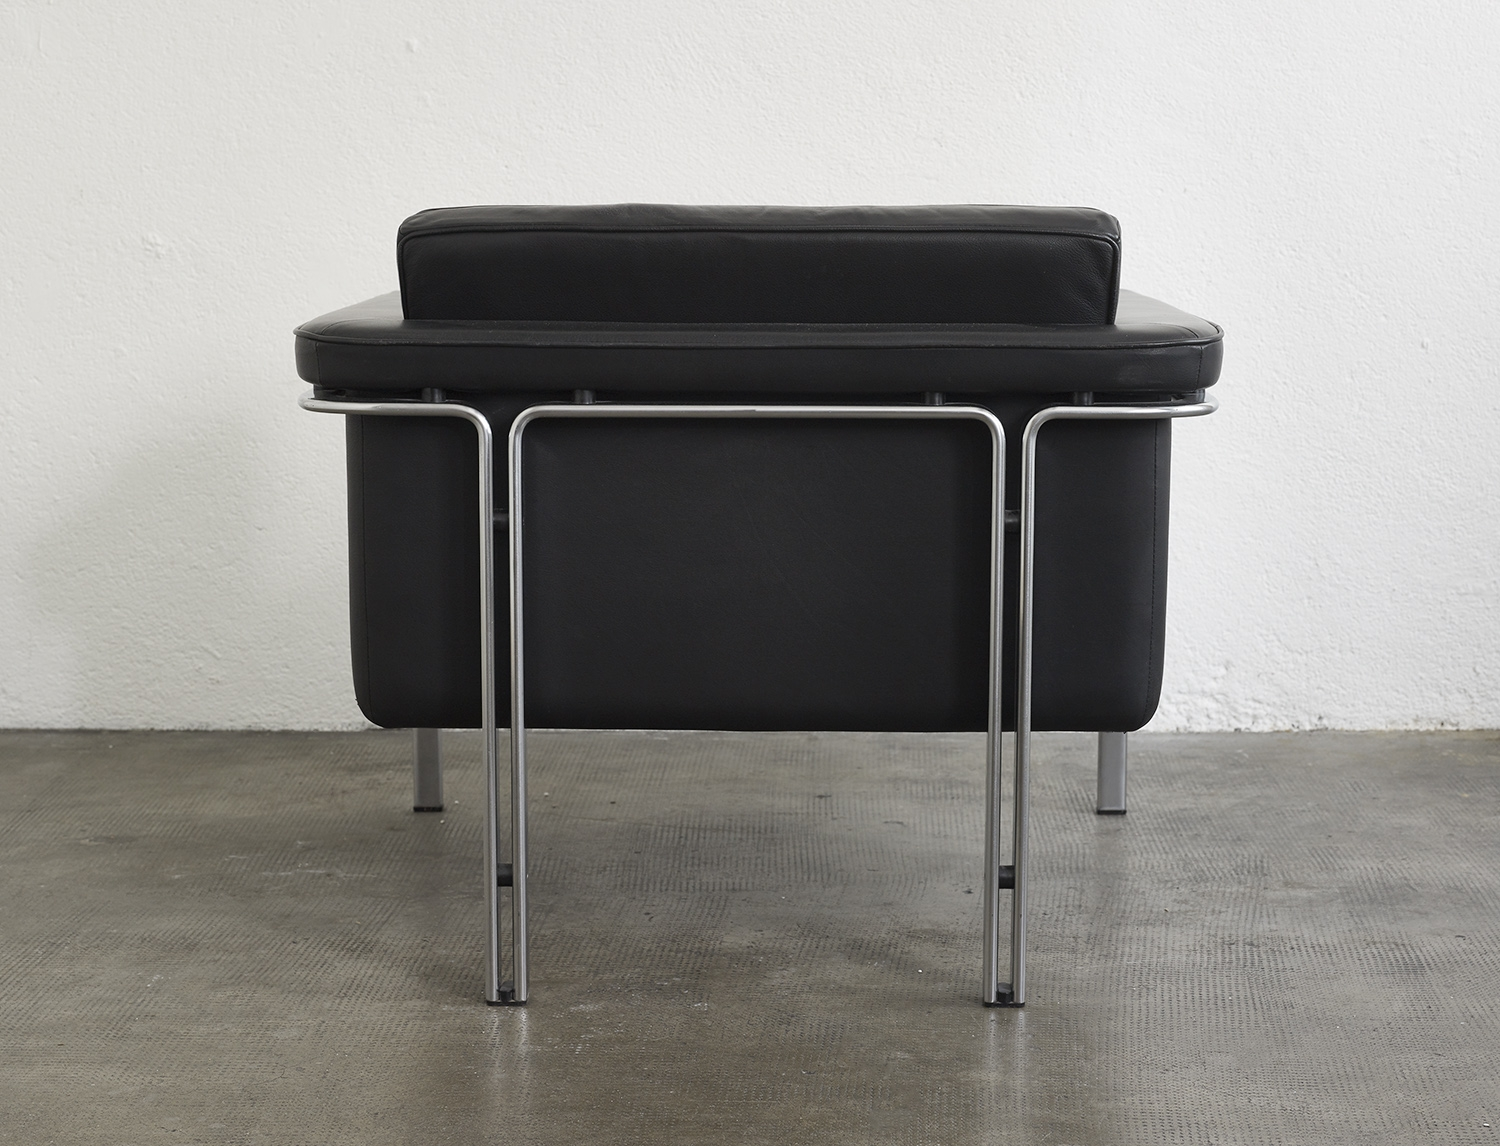 leather-easy-chair-by-horst-bruning-1960-image-04